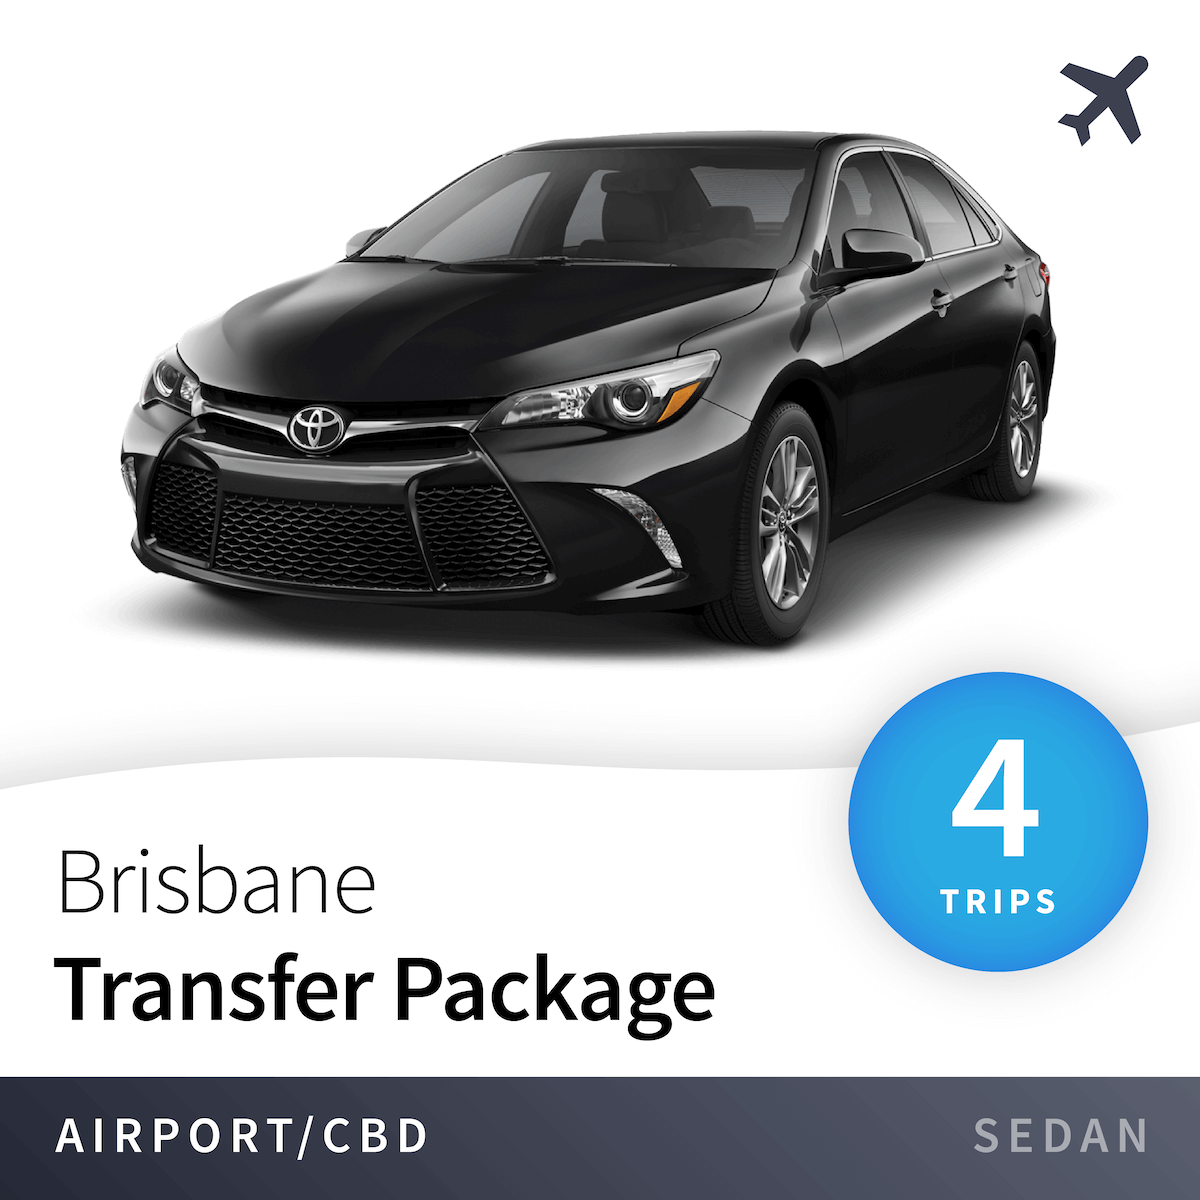 Brisbane Airport Transfer Package - Sedan (4 Trips) 5